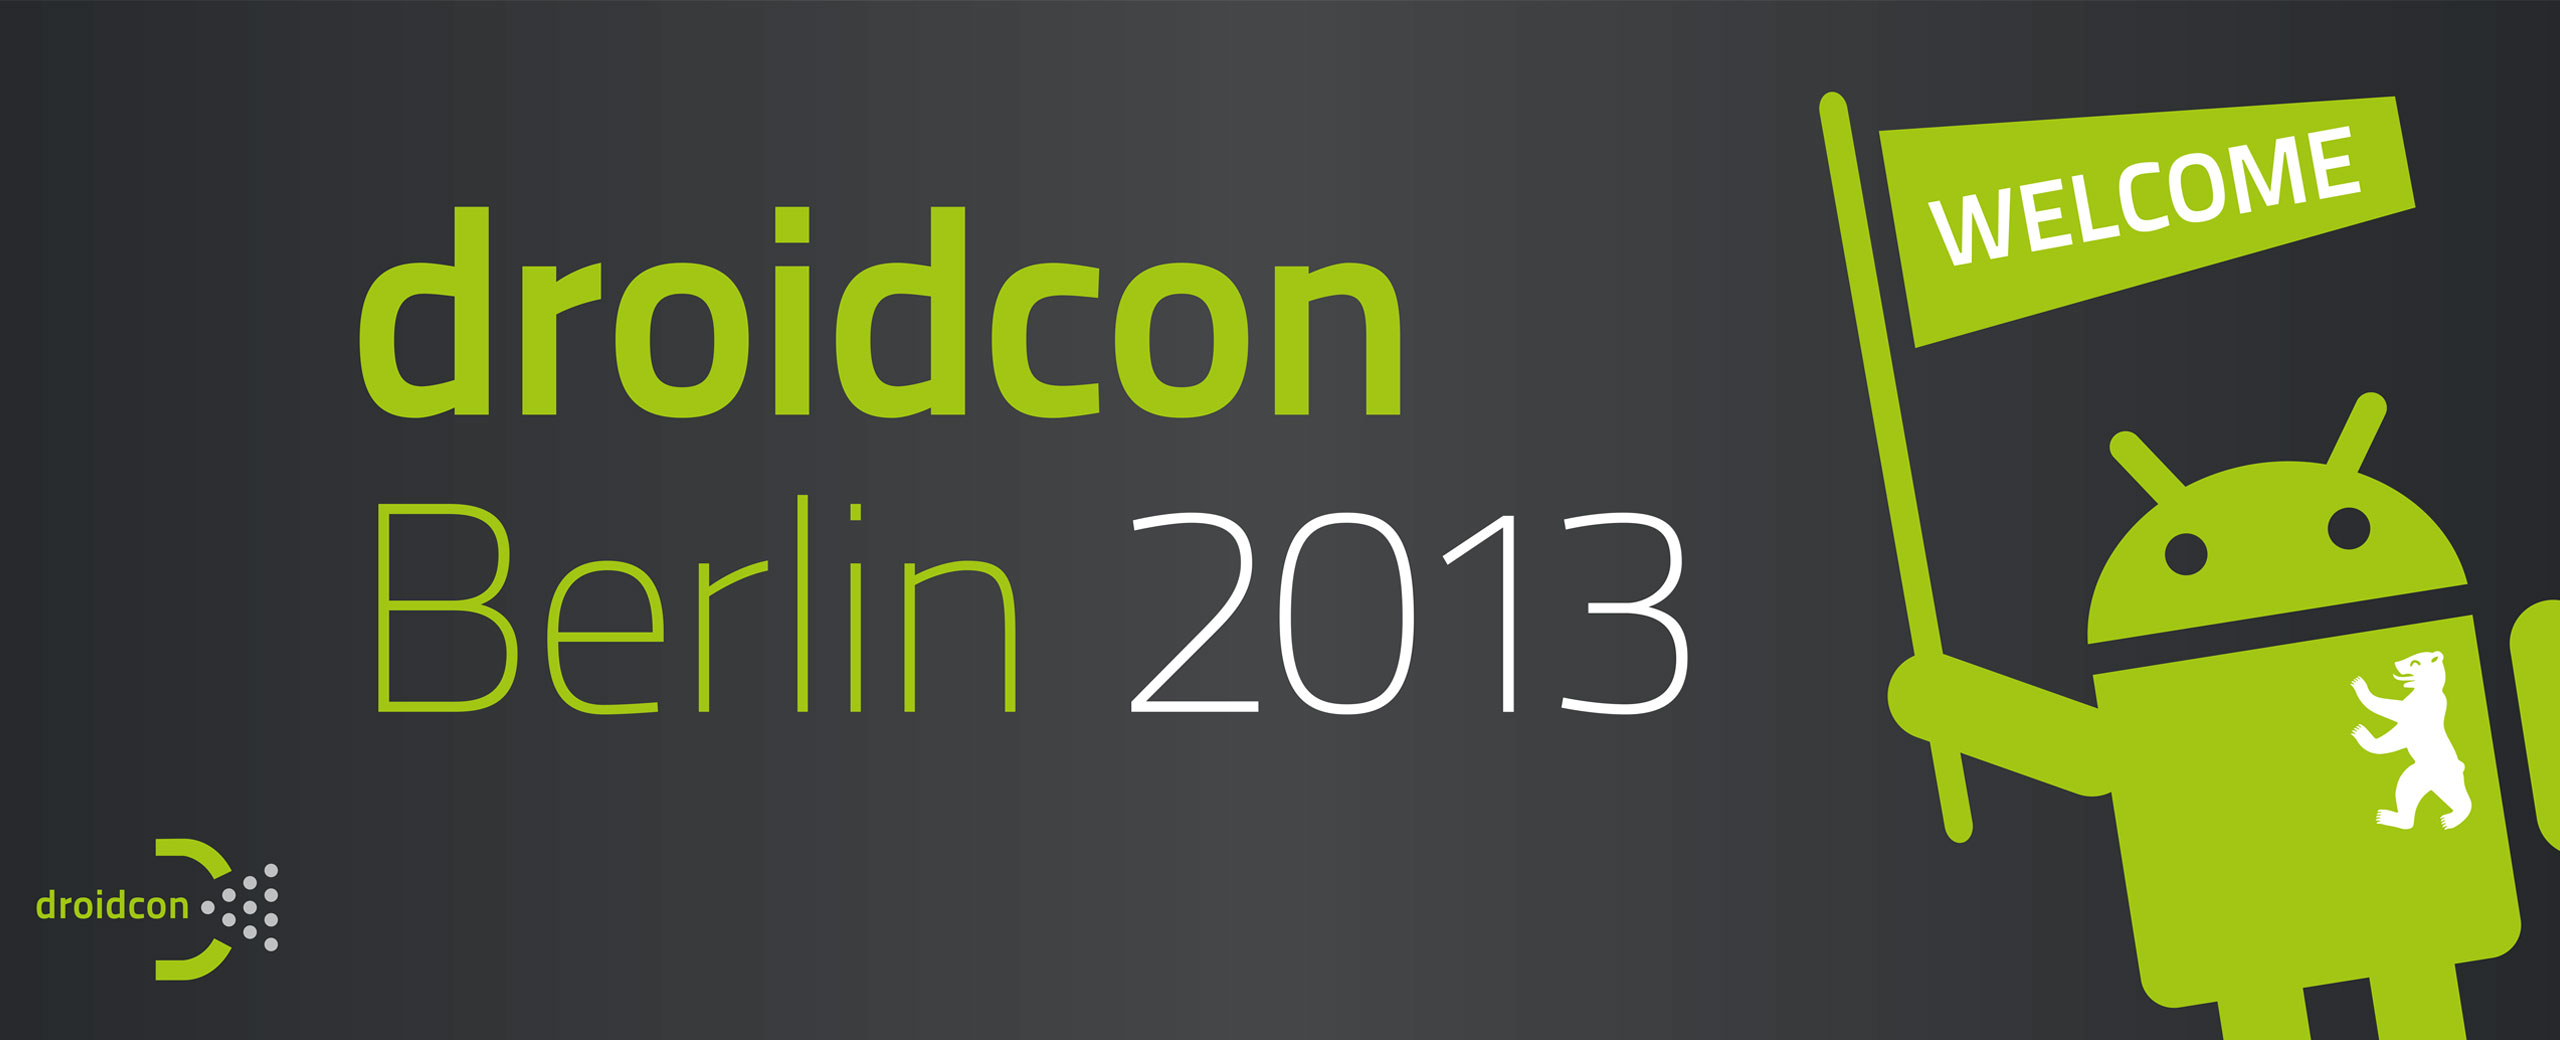 Droidcon Berlin Banner 2013